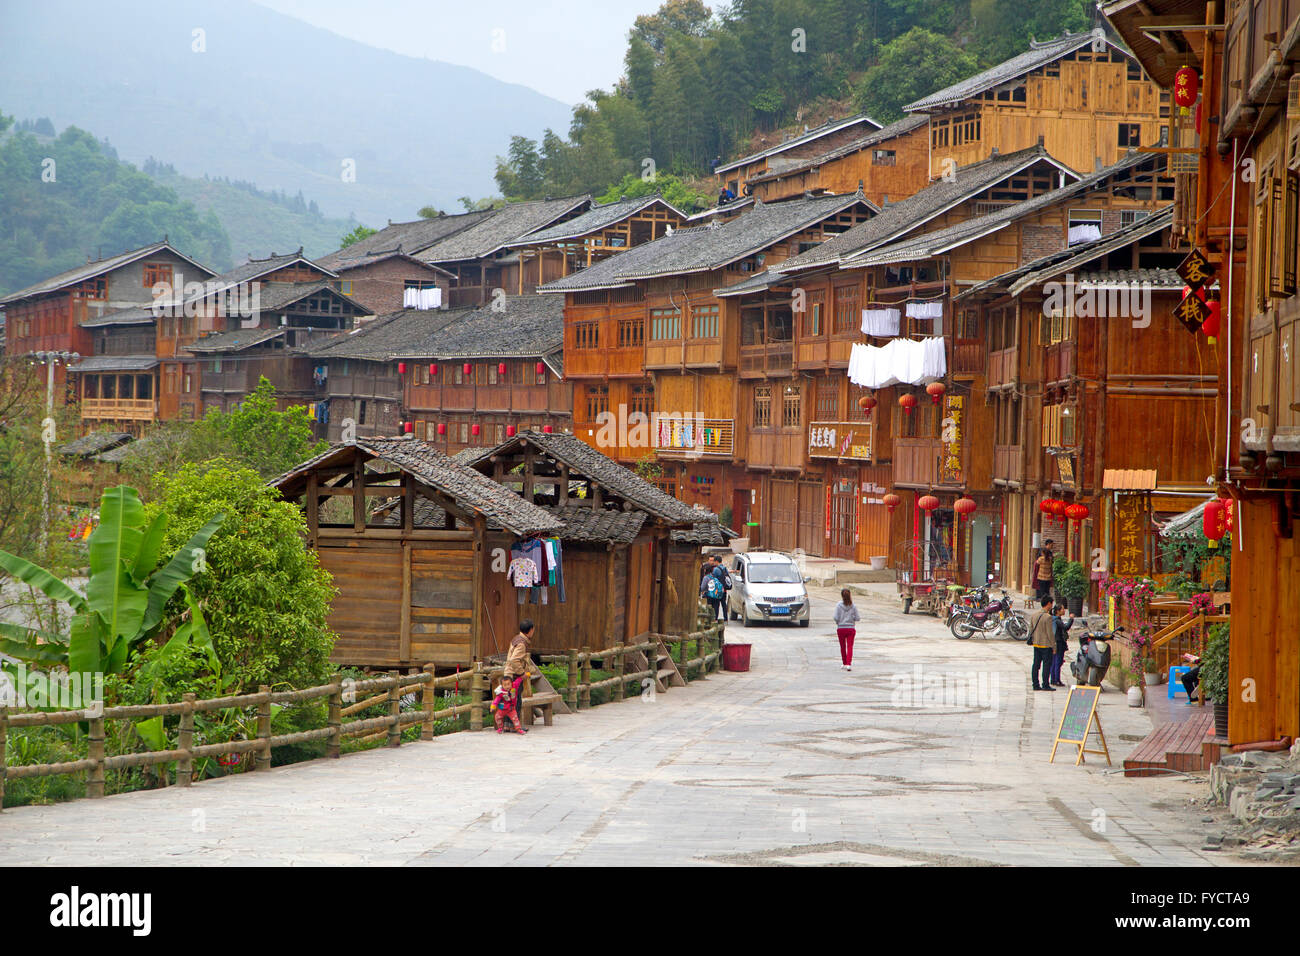 The Dong minority village of Zhaoxing Stock Photo